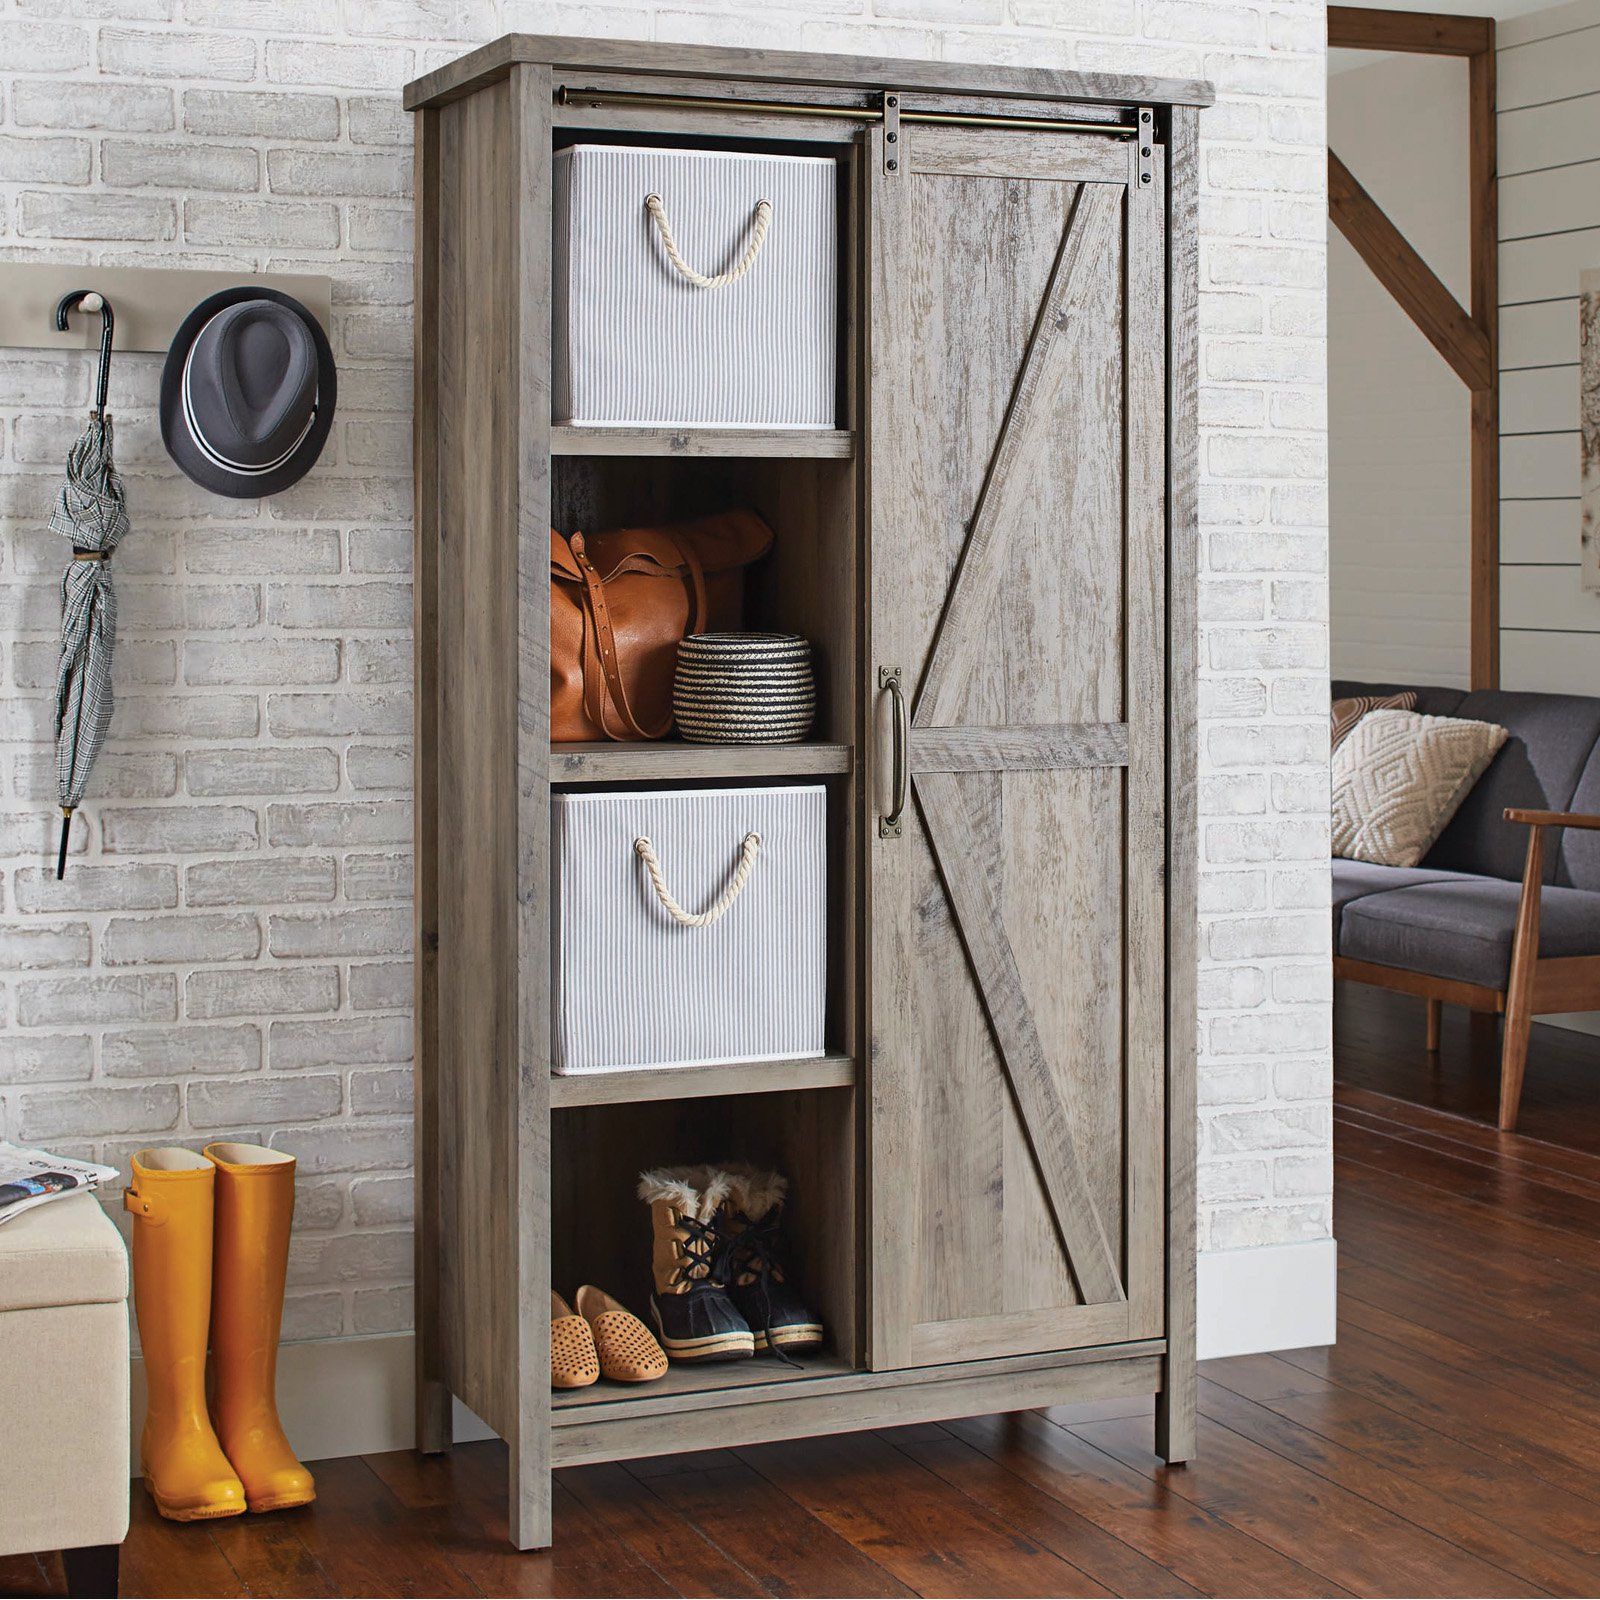 better homes gardens modern farmhouse storage bookcase cabinet and accent table rustic gray finish best home decor ping websites garden big lots end tables bar pub set high lack